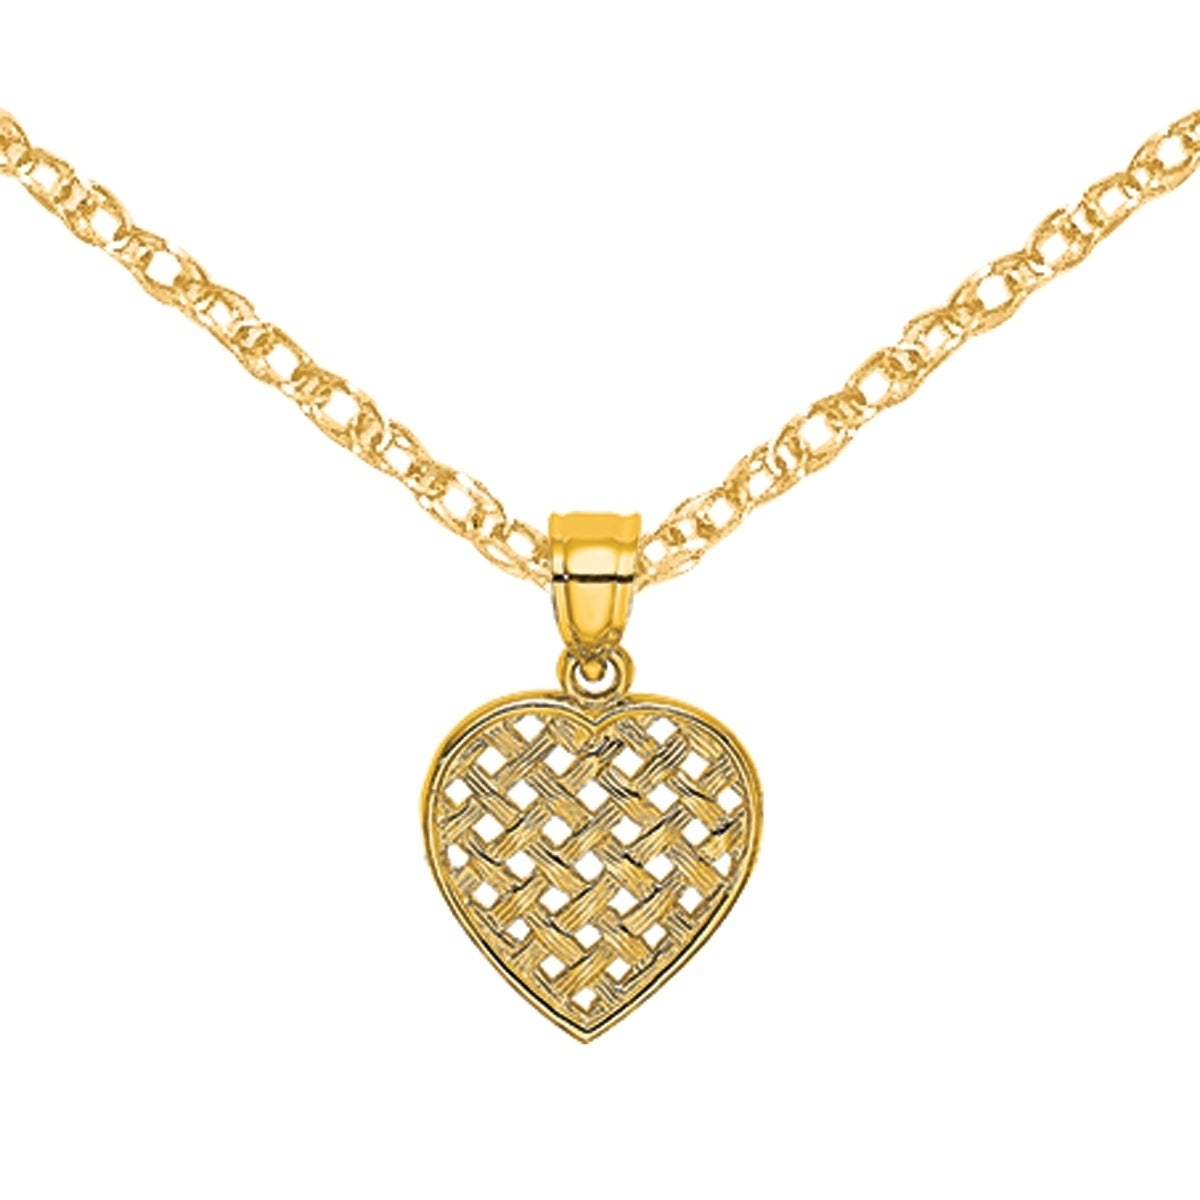 14K Gold Cut-Out And Textured Woven Heart Charm Pendant